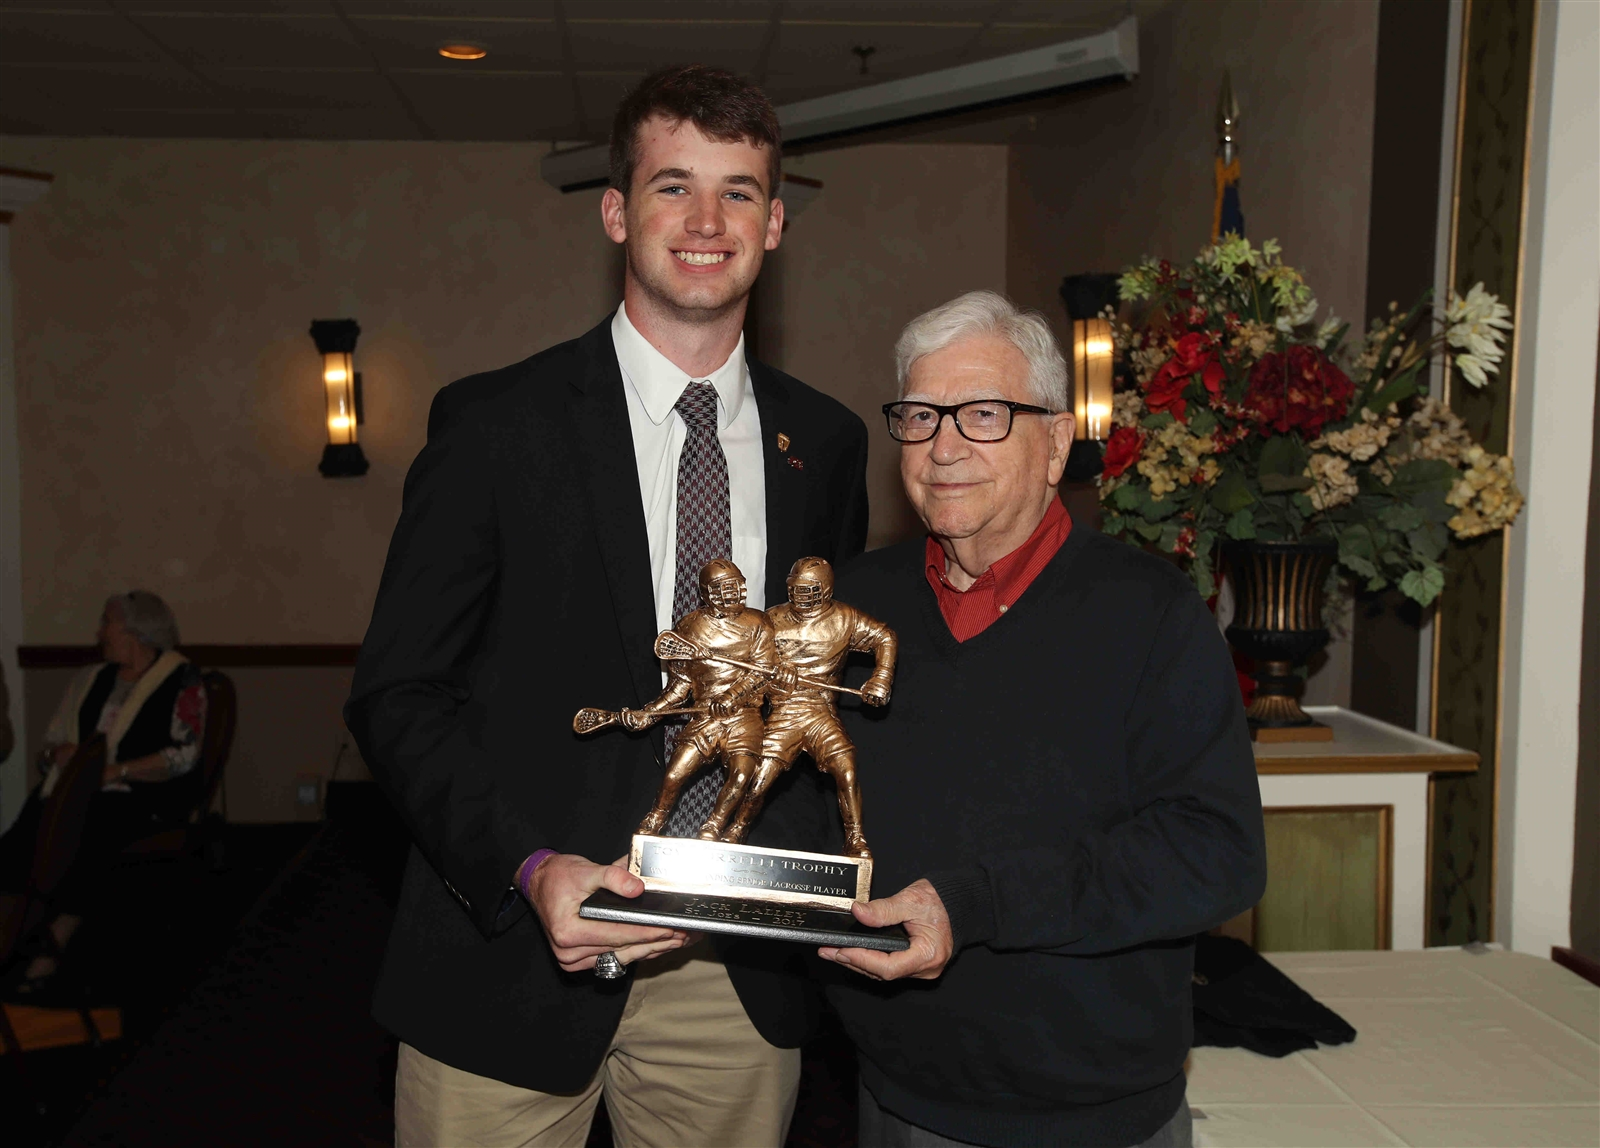 George Borrelli presents the 2017 Borrelli Award for boys lacrosse to Jack Lalley of St. Joe's.